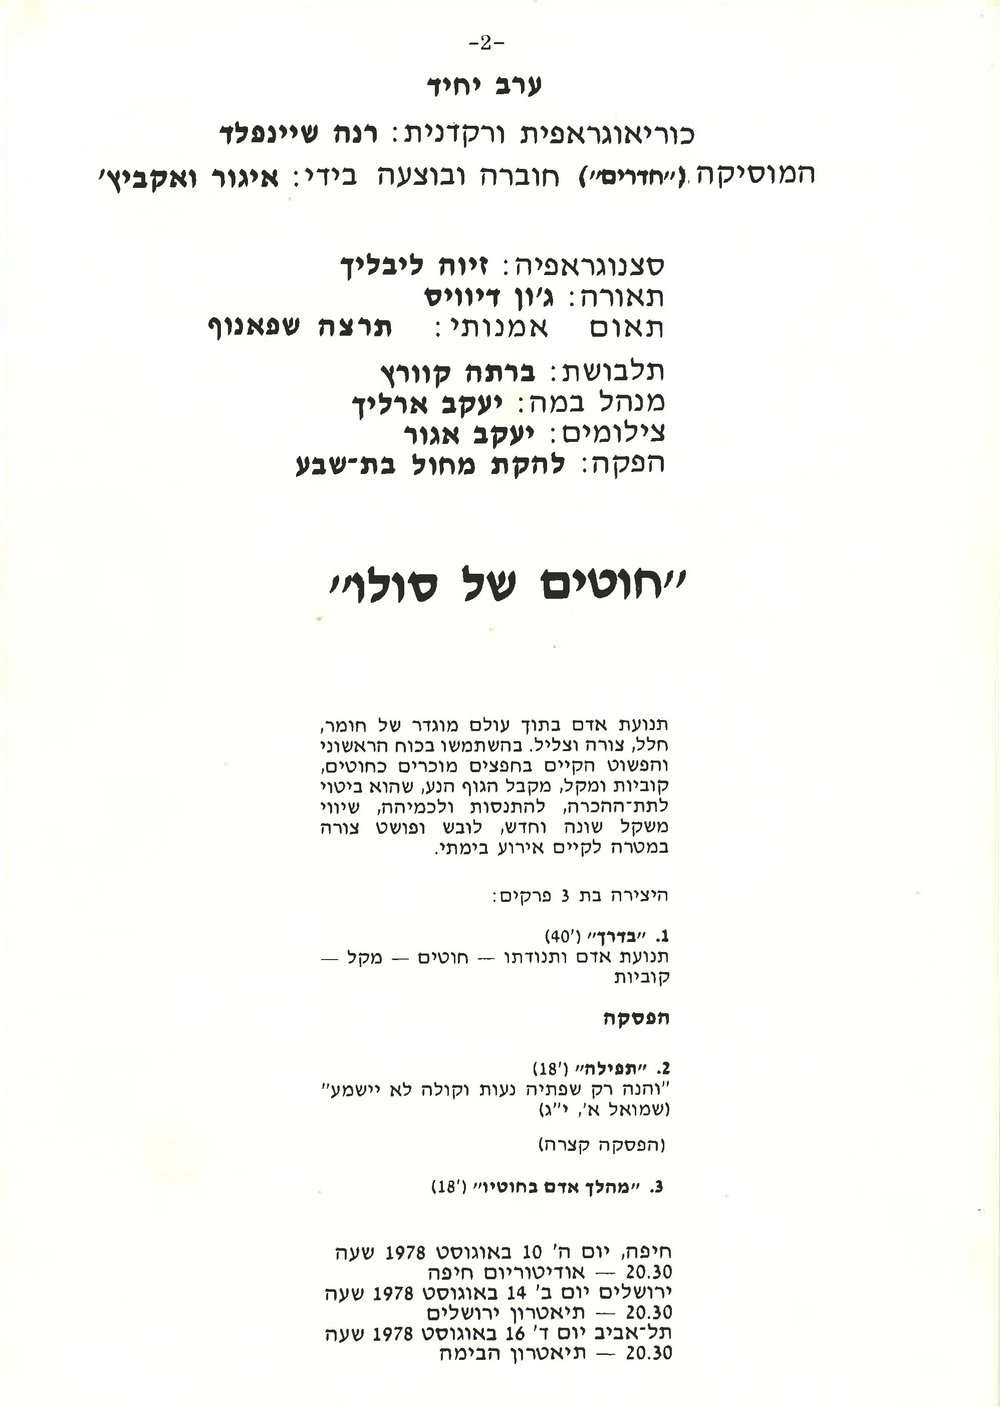 IN HEBREW PAGE 2 ISRAEL FESTIVAL PROGRAM .jpg